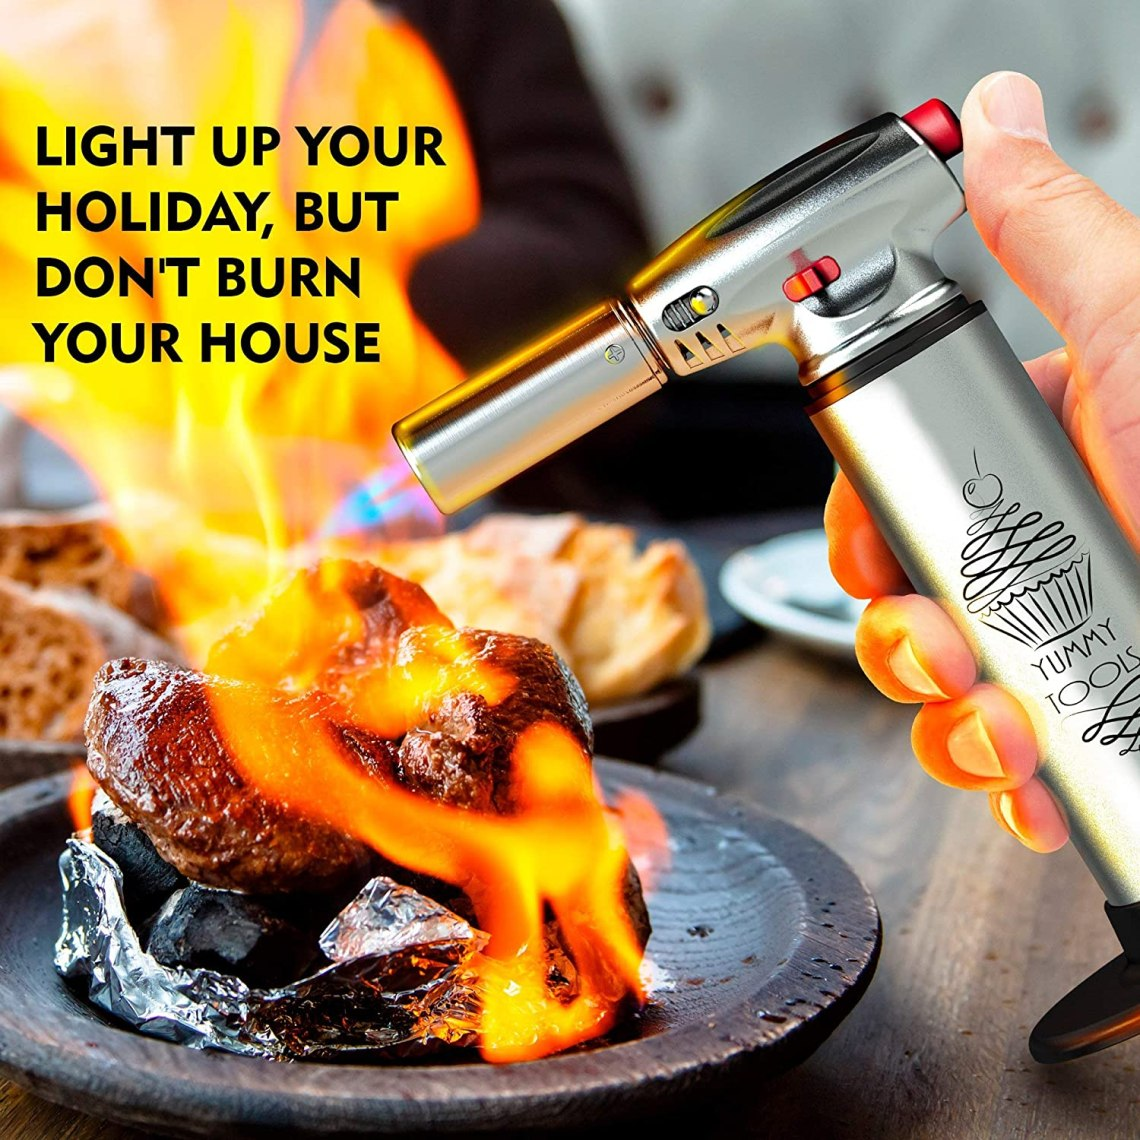 Buy Best Culinary Torch Chef Torch For Cooking Creme Brulee Aluminum Hand Butane Kitchen Torch Blow Torch With Adjustable Flame Cooking Torch Perfect For Baking Bbqs Crafts